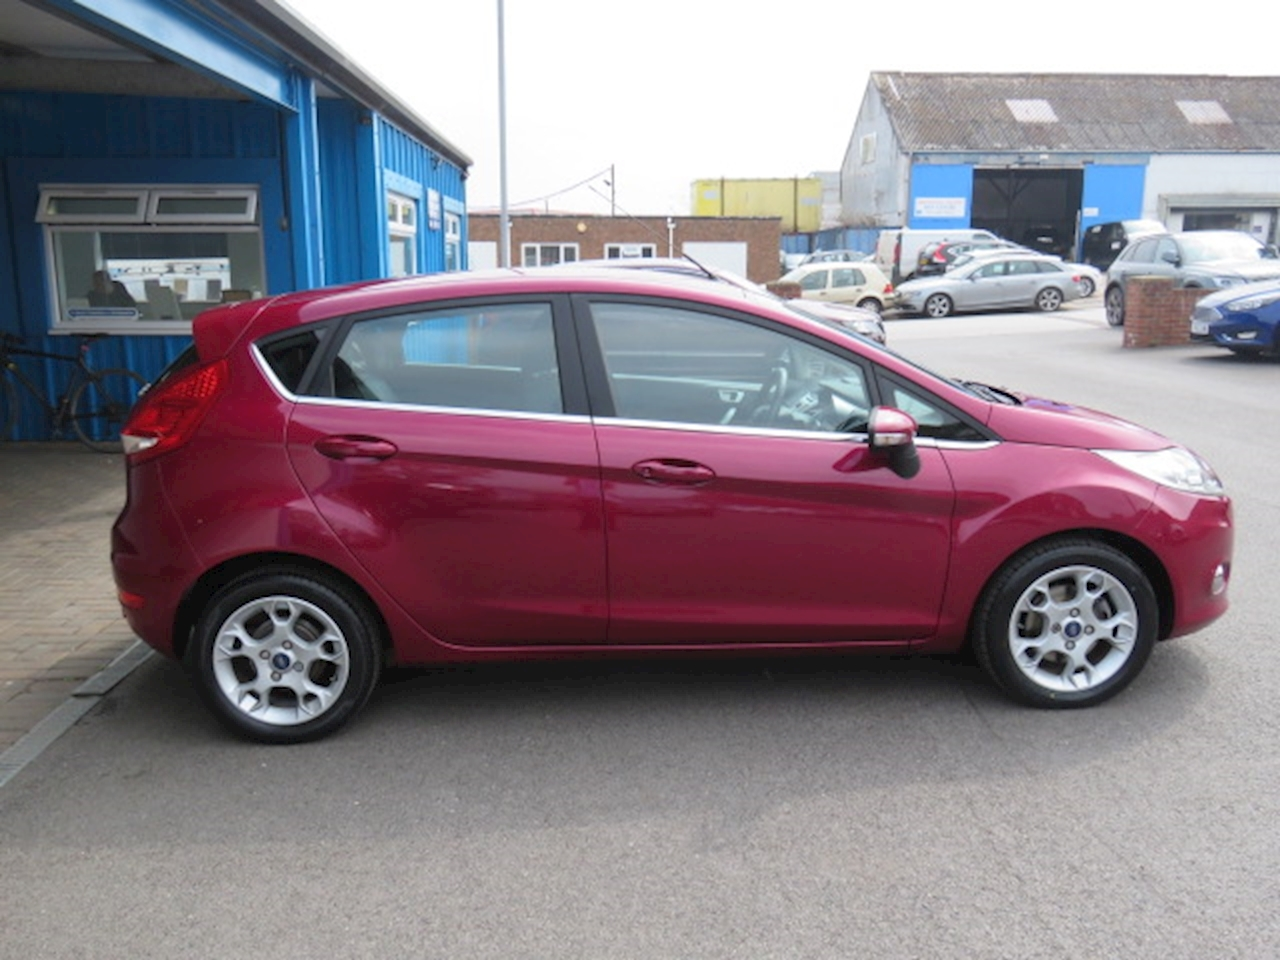 Ford Fiesta Zetec 1.4 5dr Hatchback Automatic Petrol